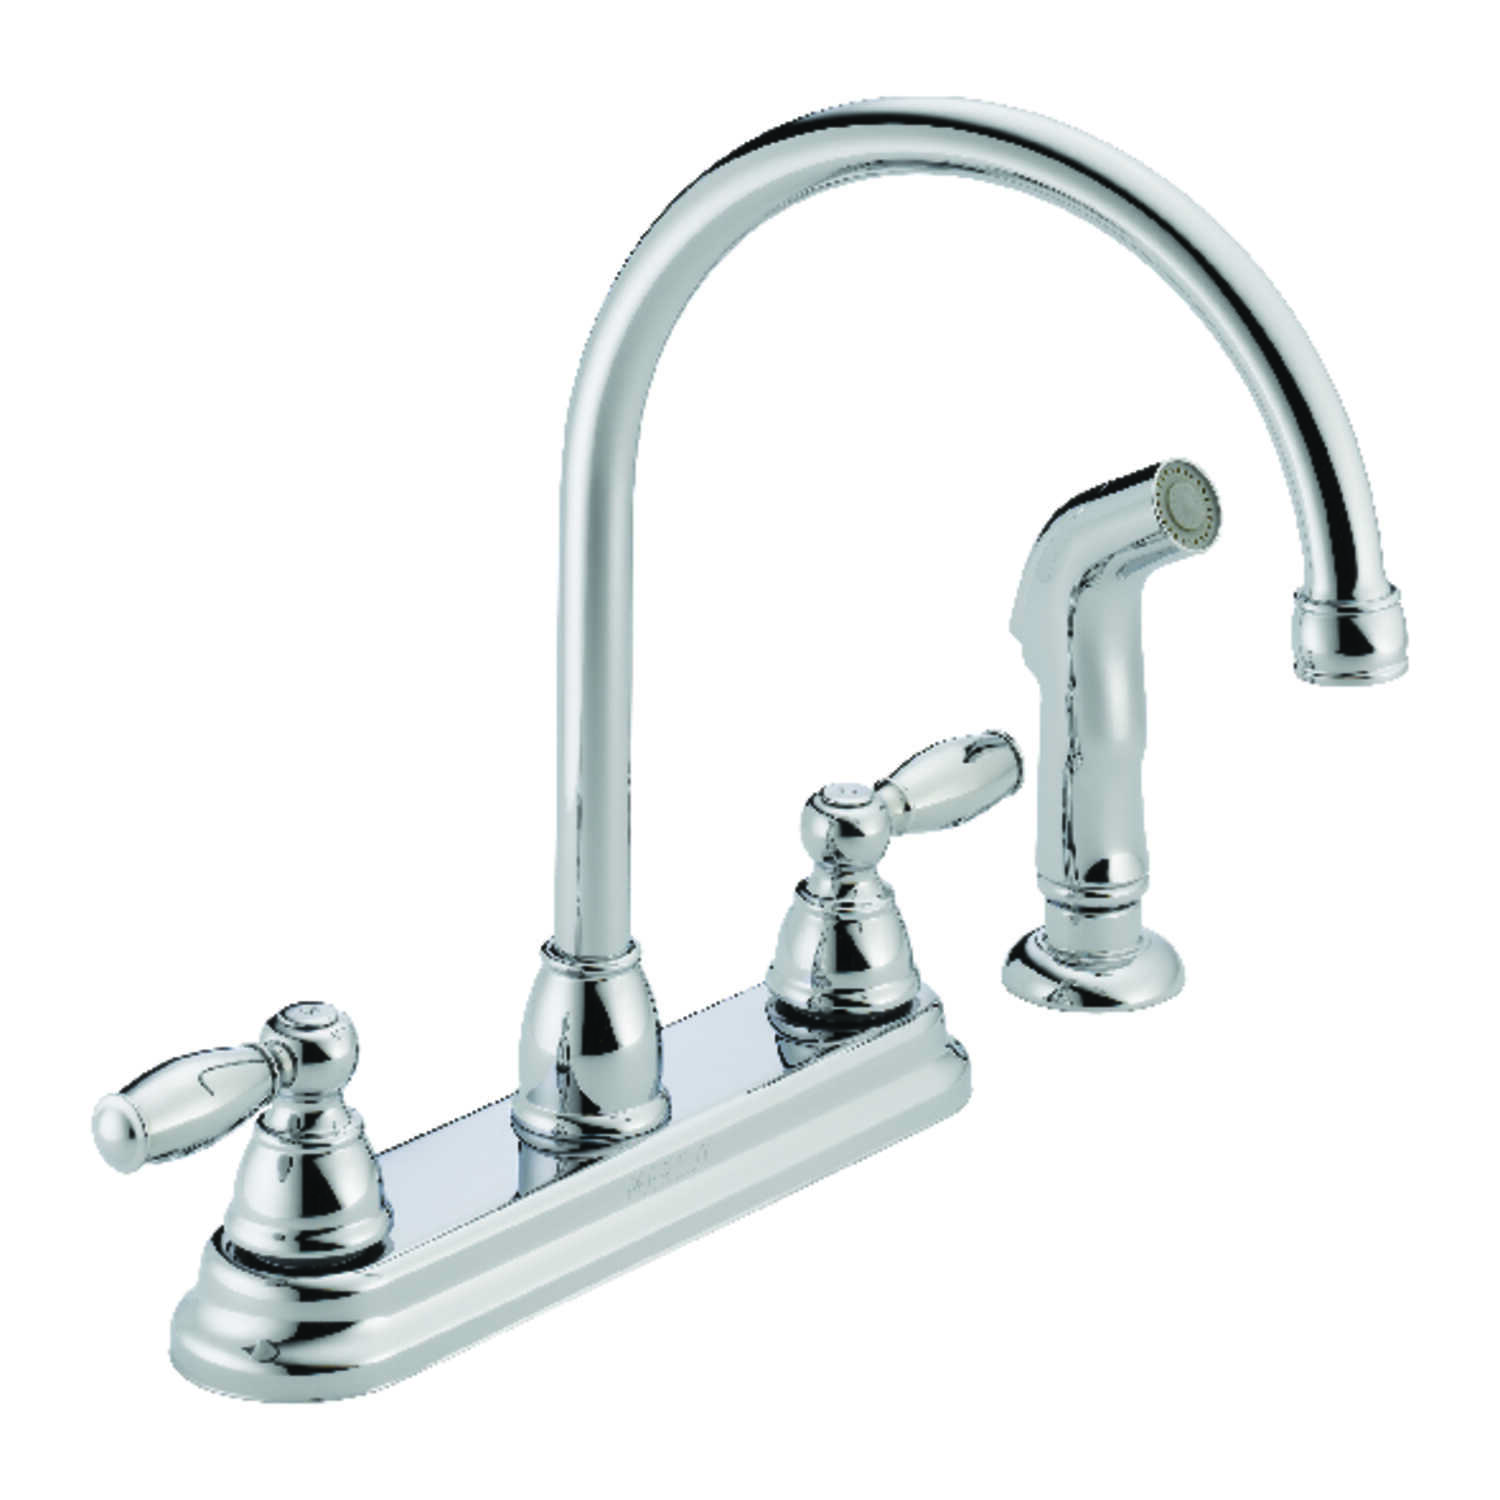 Peerless  Claymore  Apex  Two Handle  Chrome  Kitchen Faucet  Side Sprayer Included